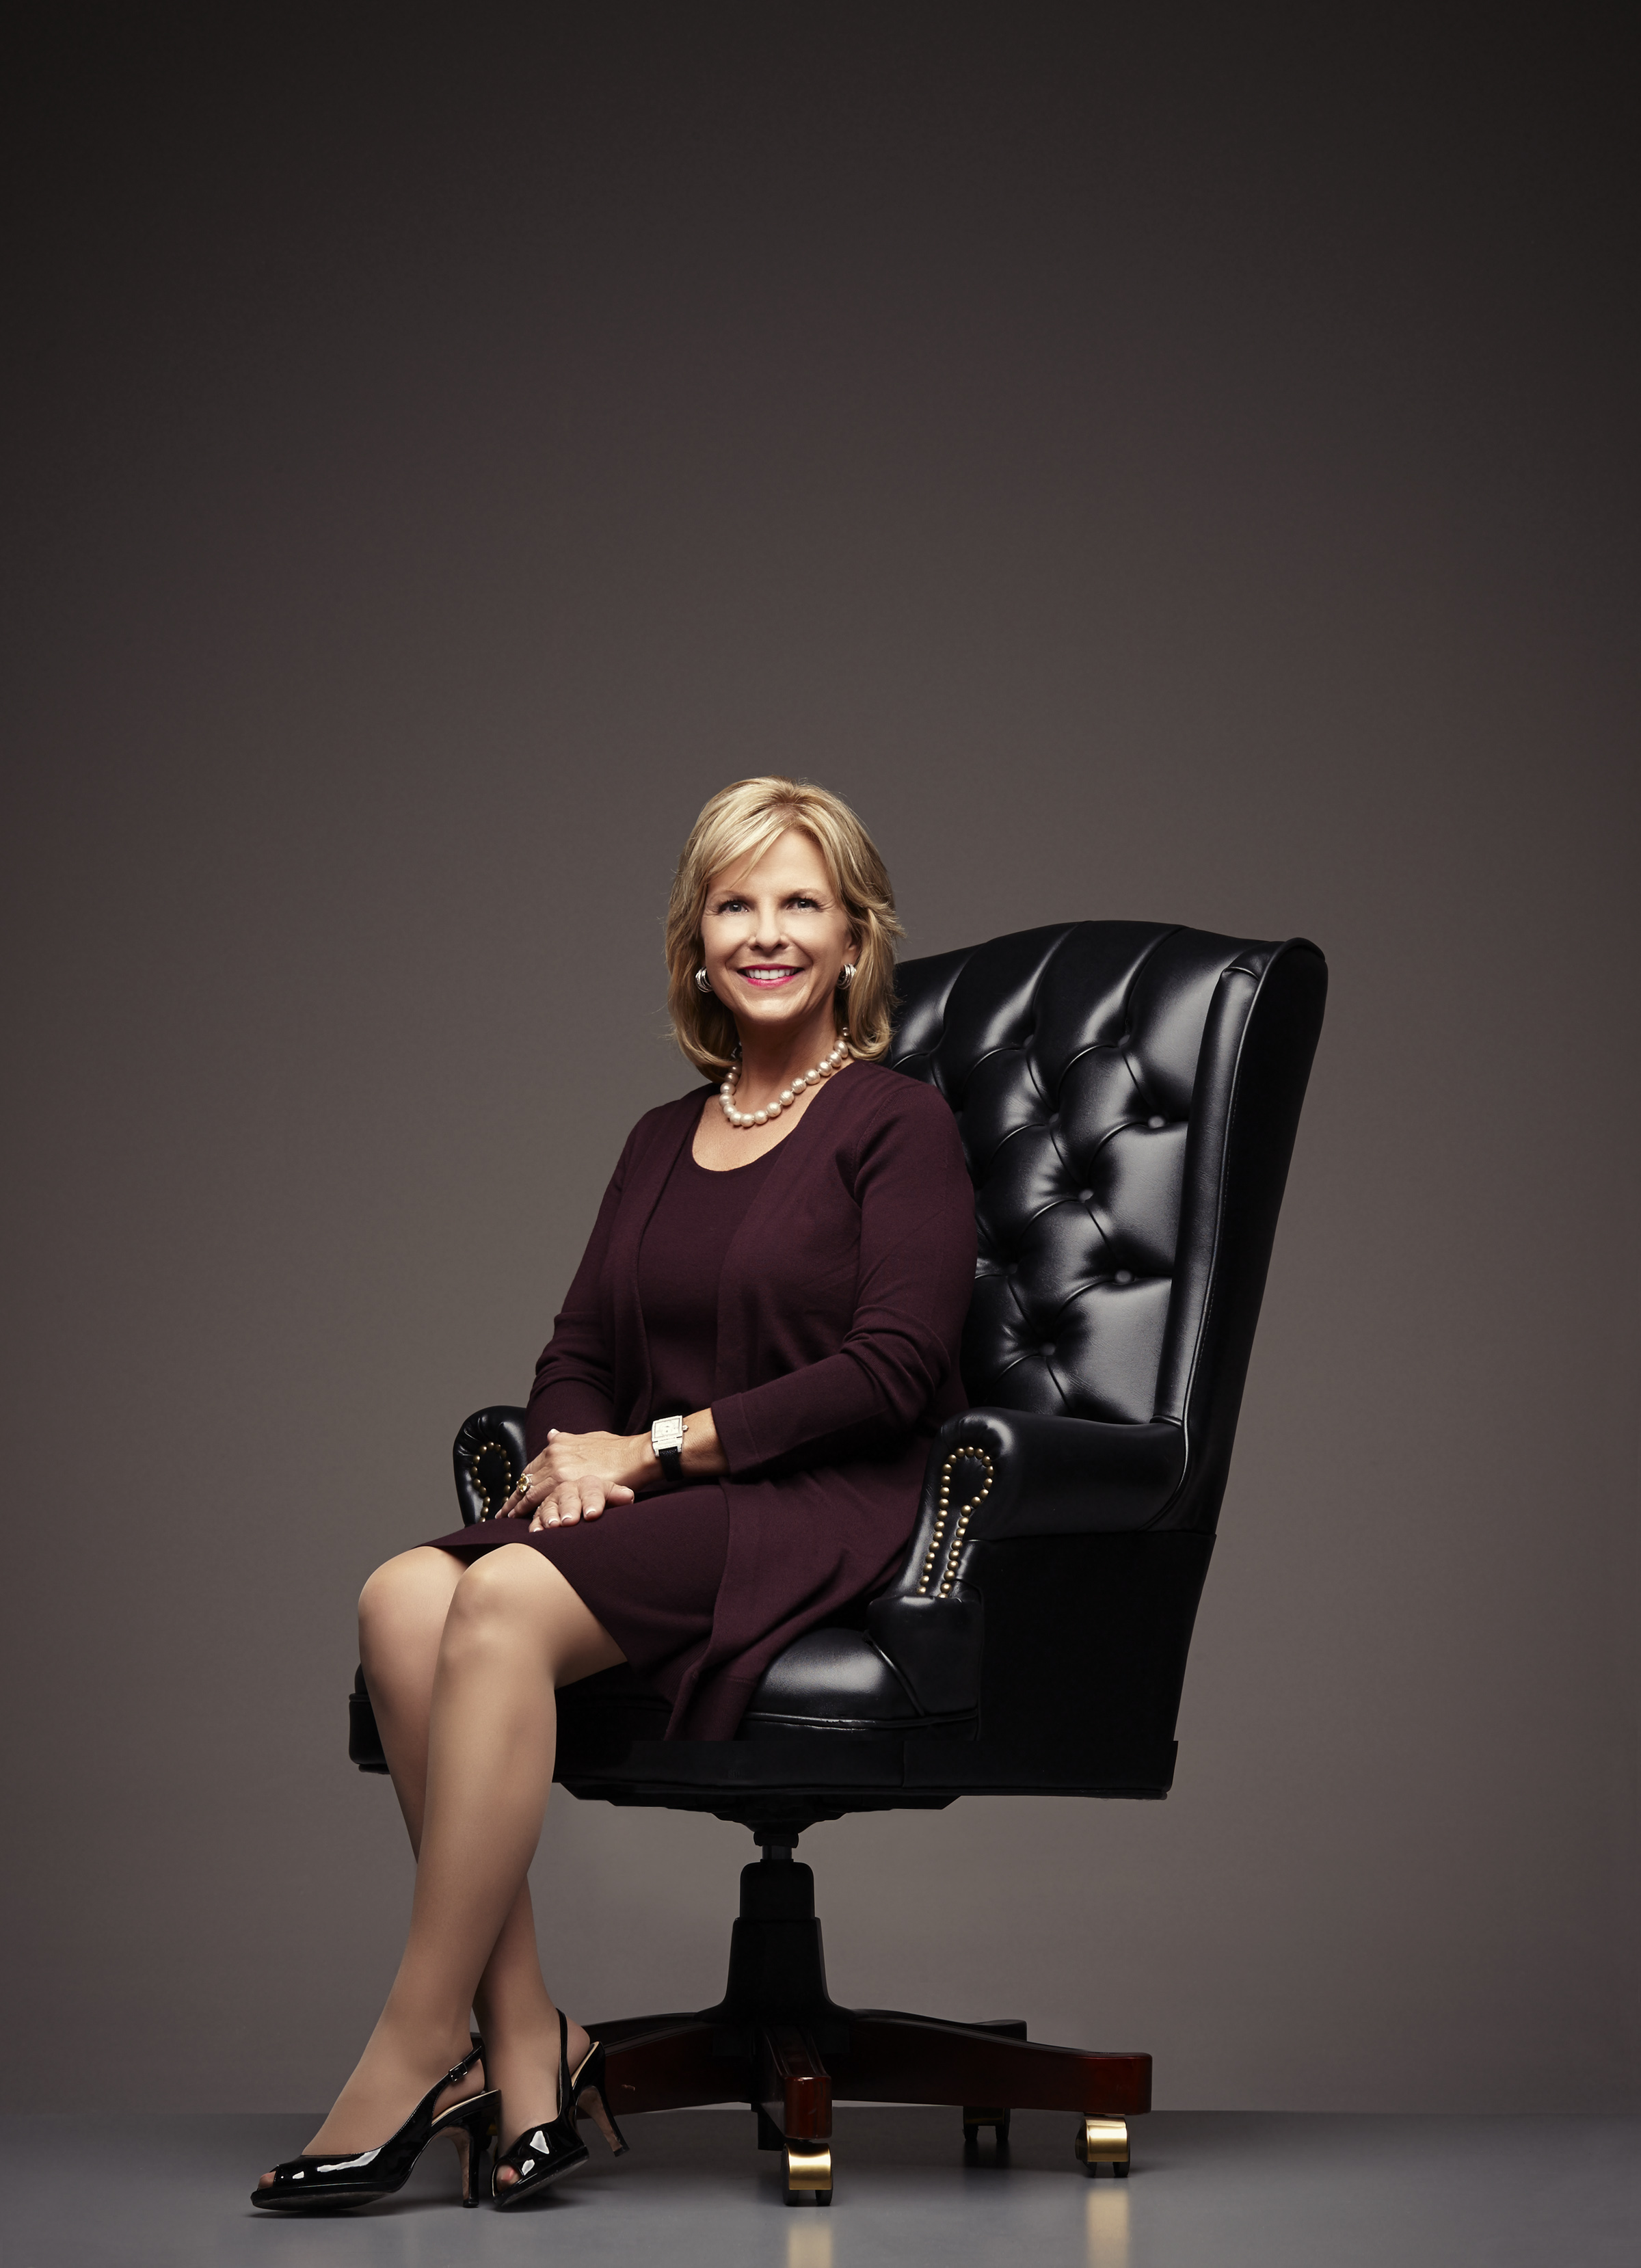 Patti Husic Centric Bank President Amp Ceo Ascends To 7